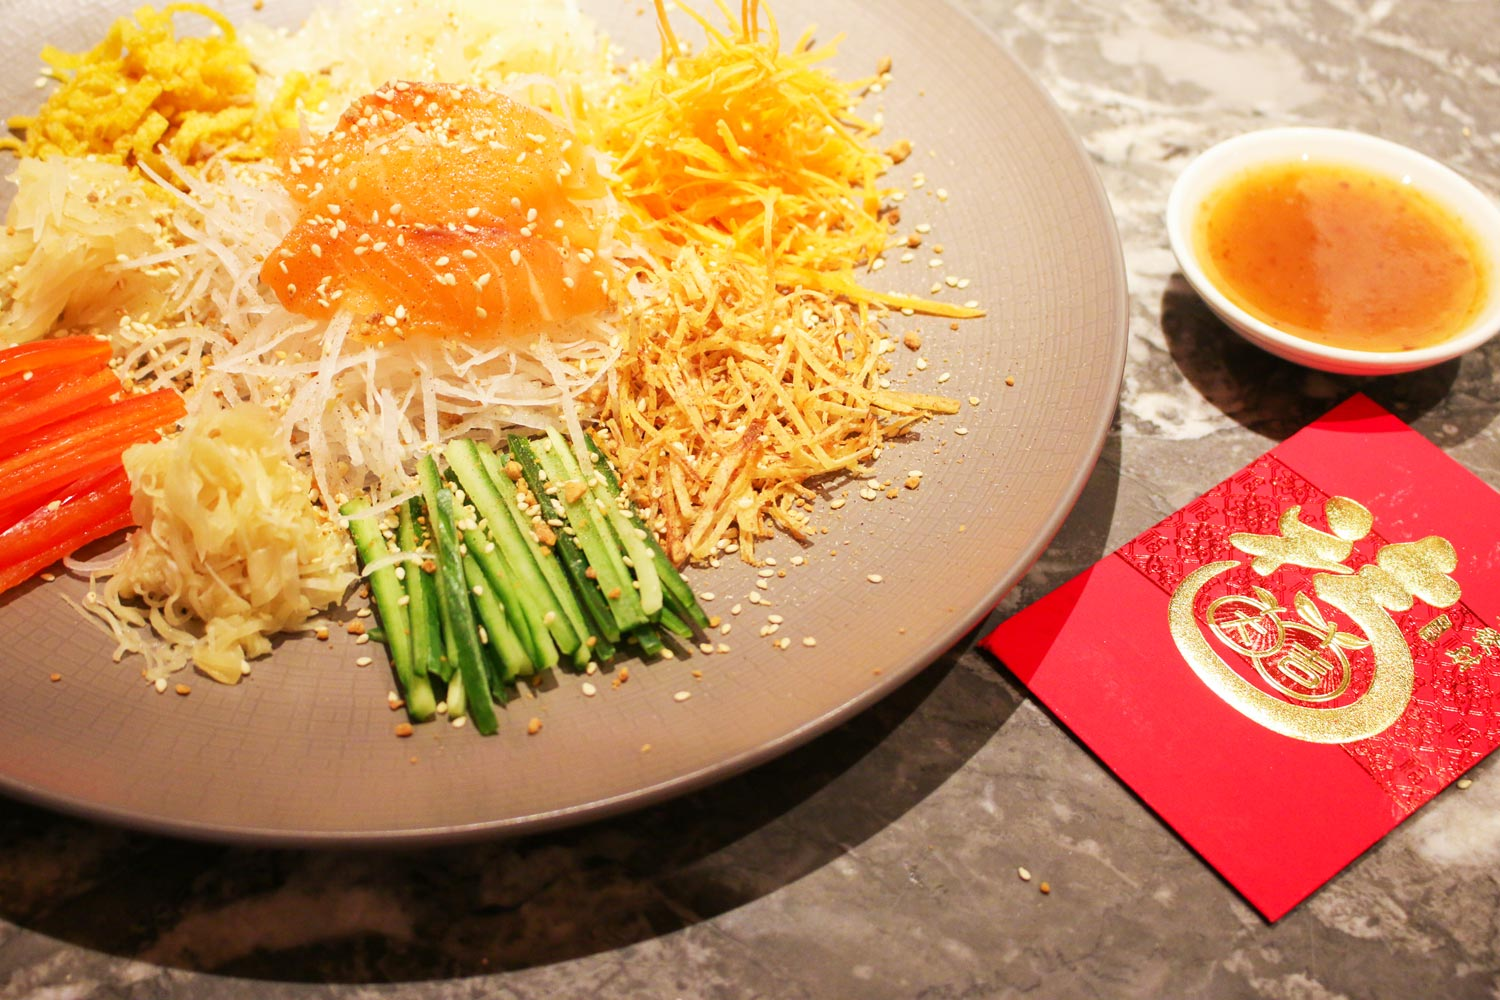 Celebrate Chinese New Year at Chi Kitchen with Celebration Lunch and Bespoke Menu